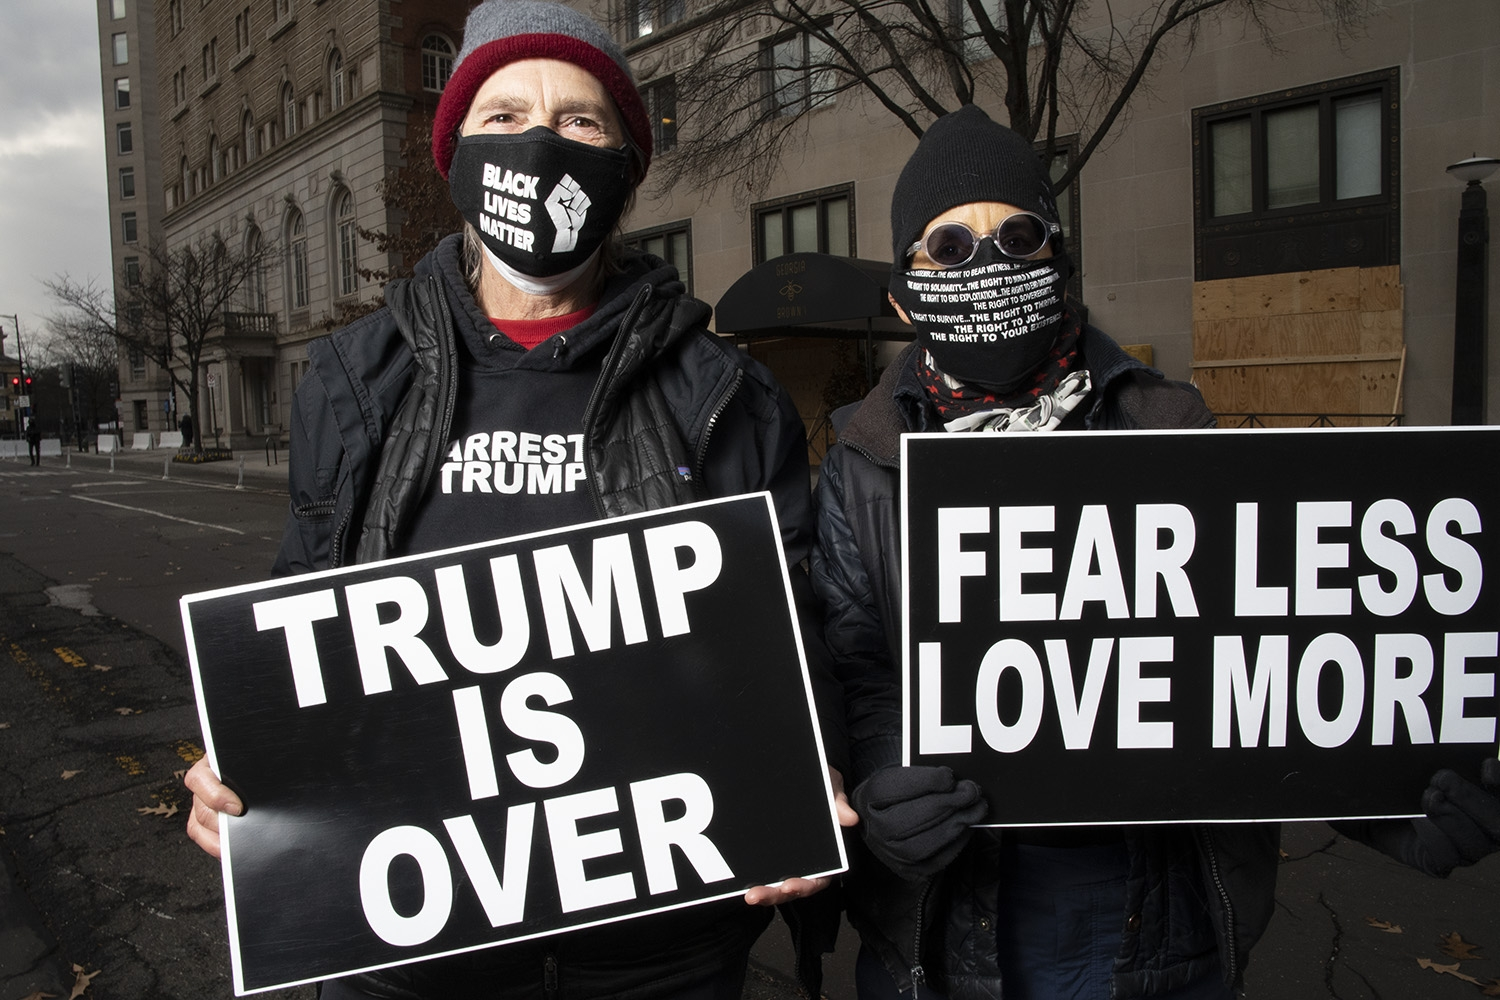 "Two protestors, dressed in black winter attire and wearing face masks stand on the streets of D.C. They are each holding a black sign with white lettering'; the sign on the left says ""Trump is Over"" and the sign on the right says ""Fear Less Love More""."